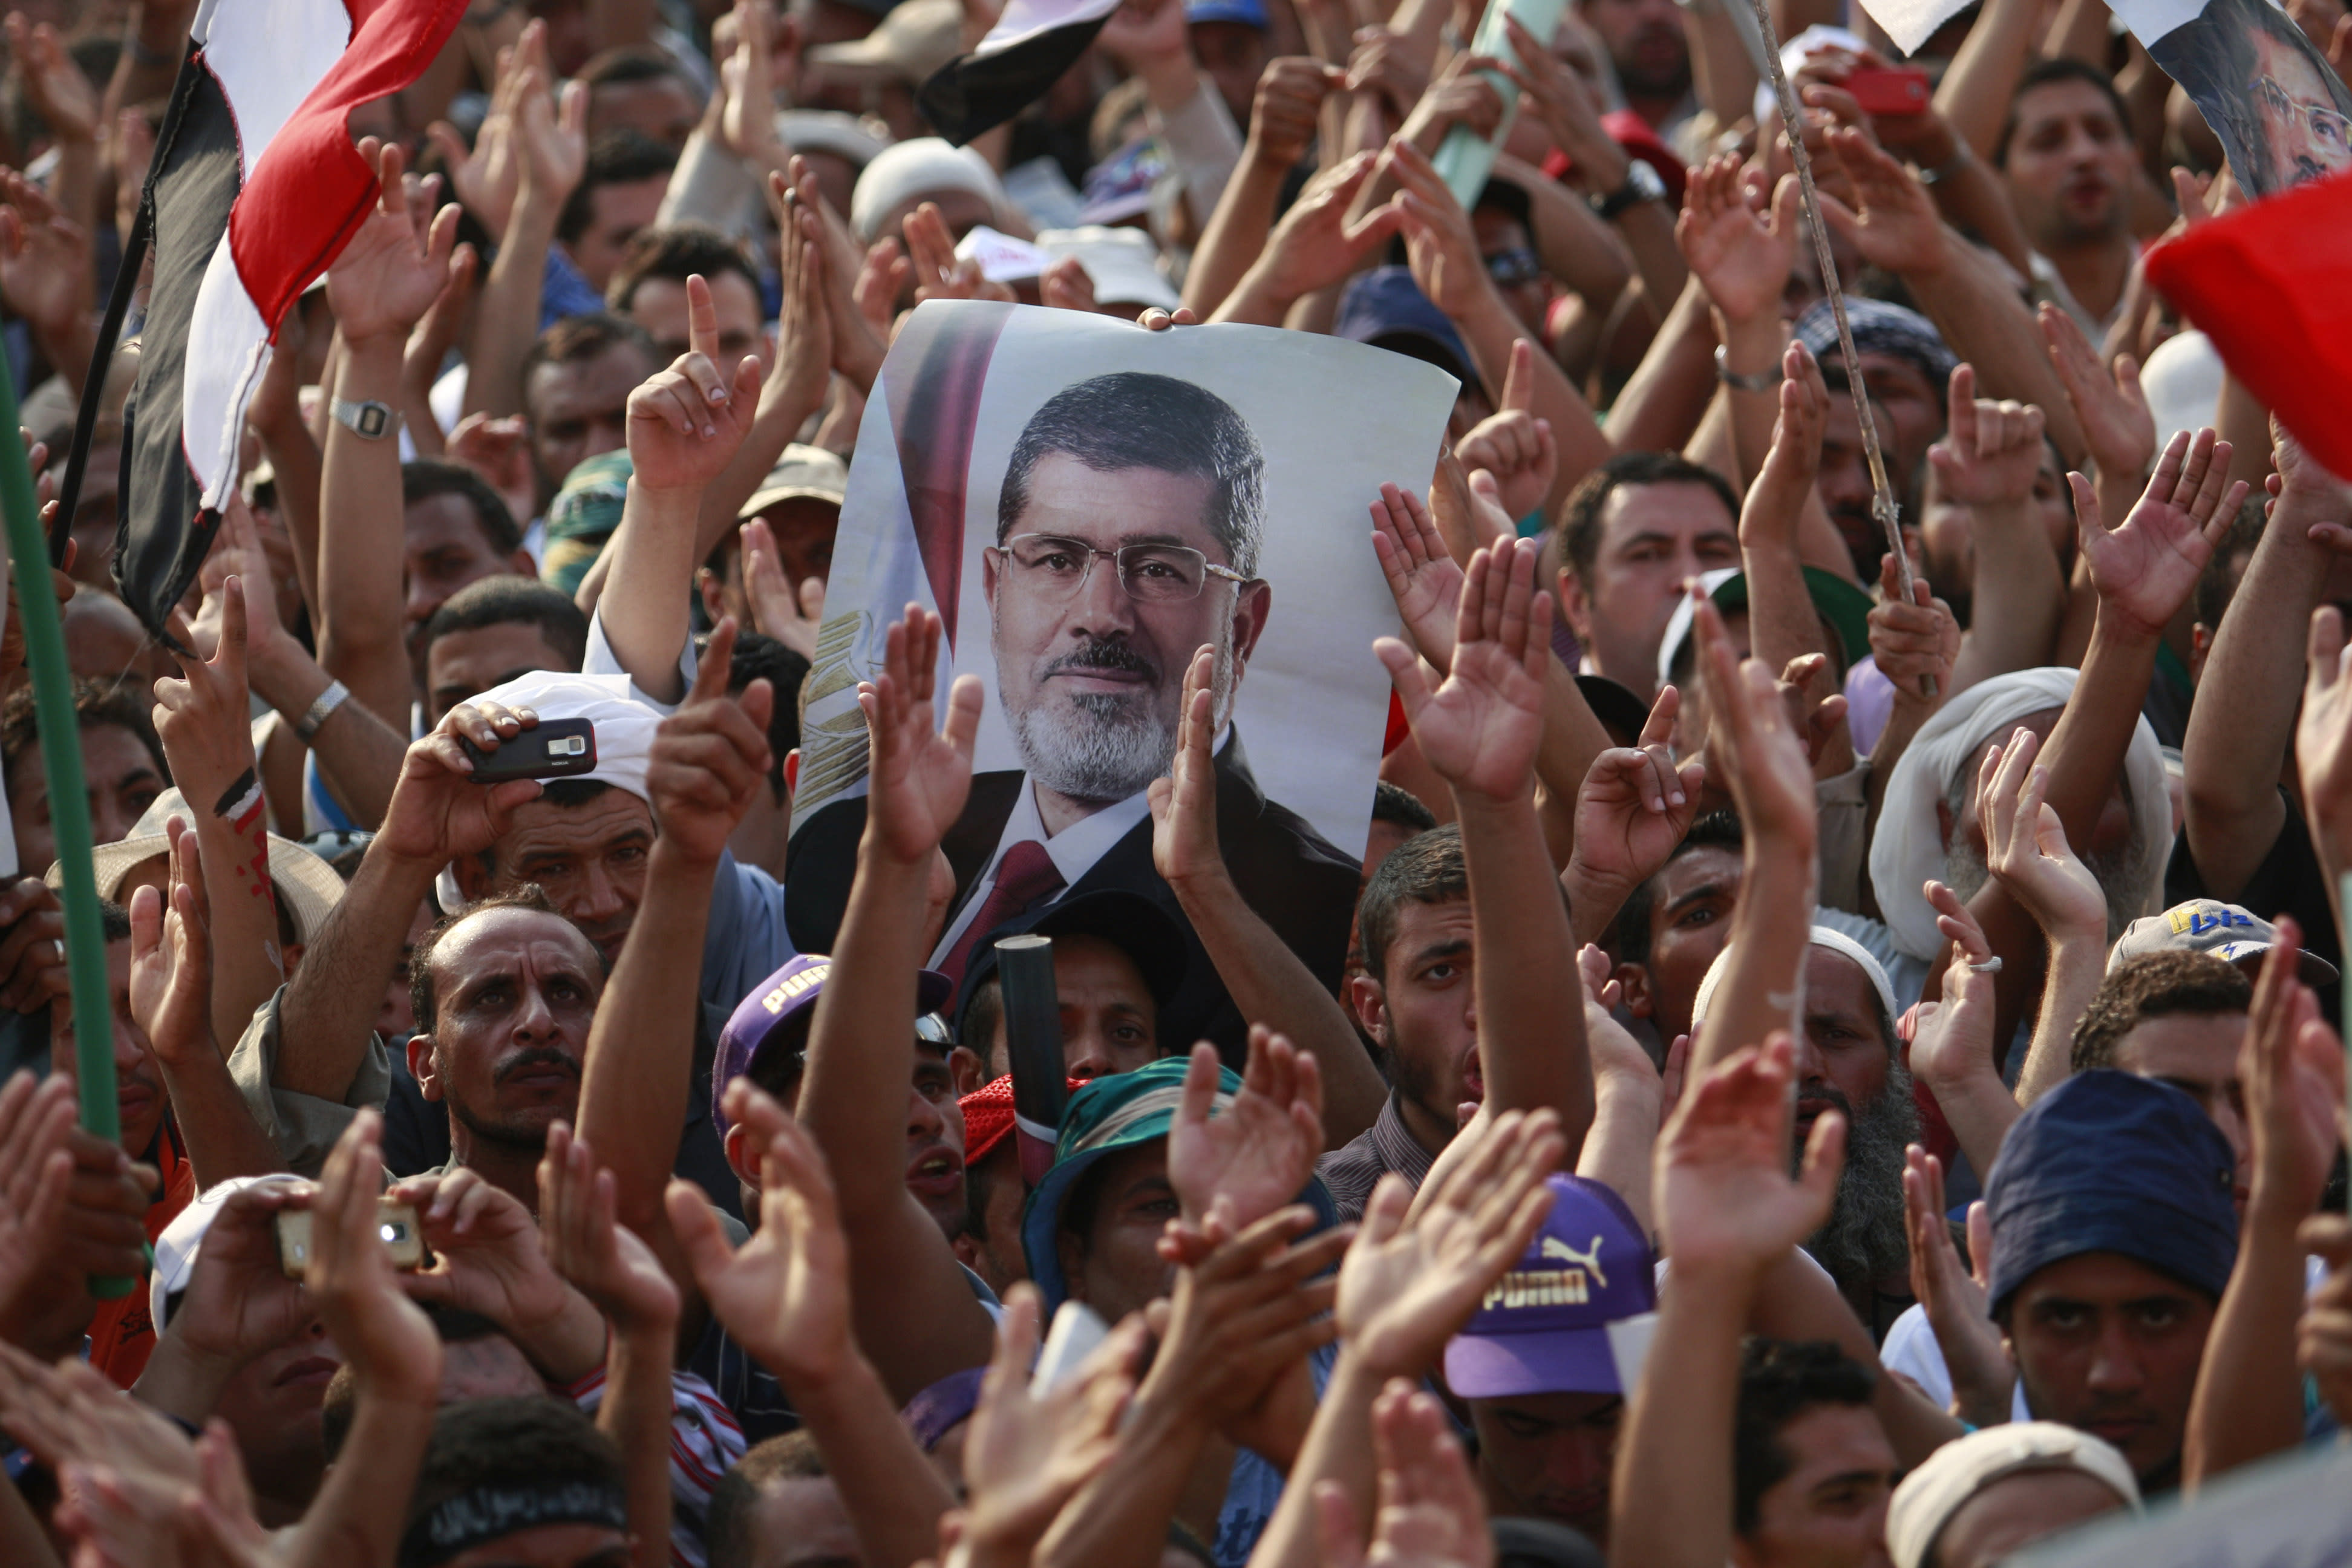 """Supporters of ousted President Mohammed Morsi, seen in poster, protest in Nasr City, Cairo, Egypt, Tuesday, July 9, 2013. After days of deadlock, Egypt's military-backed interim president named a veteran economist as prime minister on Tuesday and appointed pro-democracy leader Mohamed ElBaradei as a vice president, while the army showed its strong hand in shepherding the process, warning political factions against """"maneuvering"""" that impedes the transition. (AP Photo/Nasser Shiyoukhi)"""